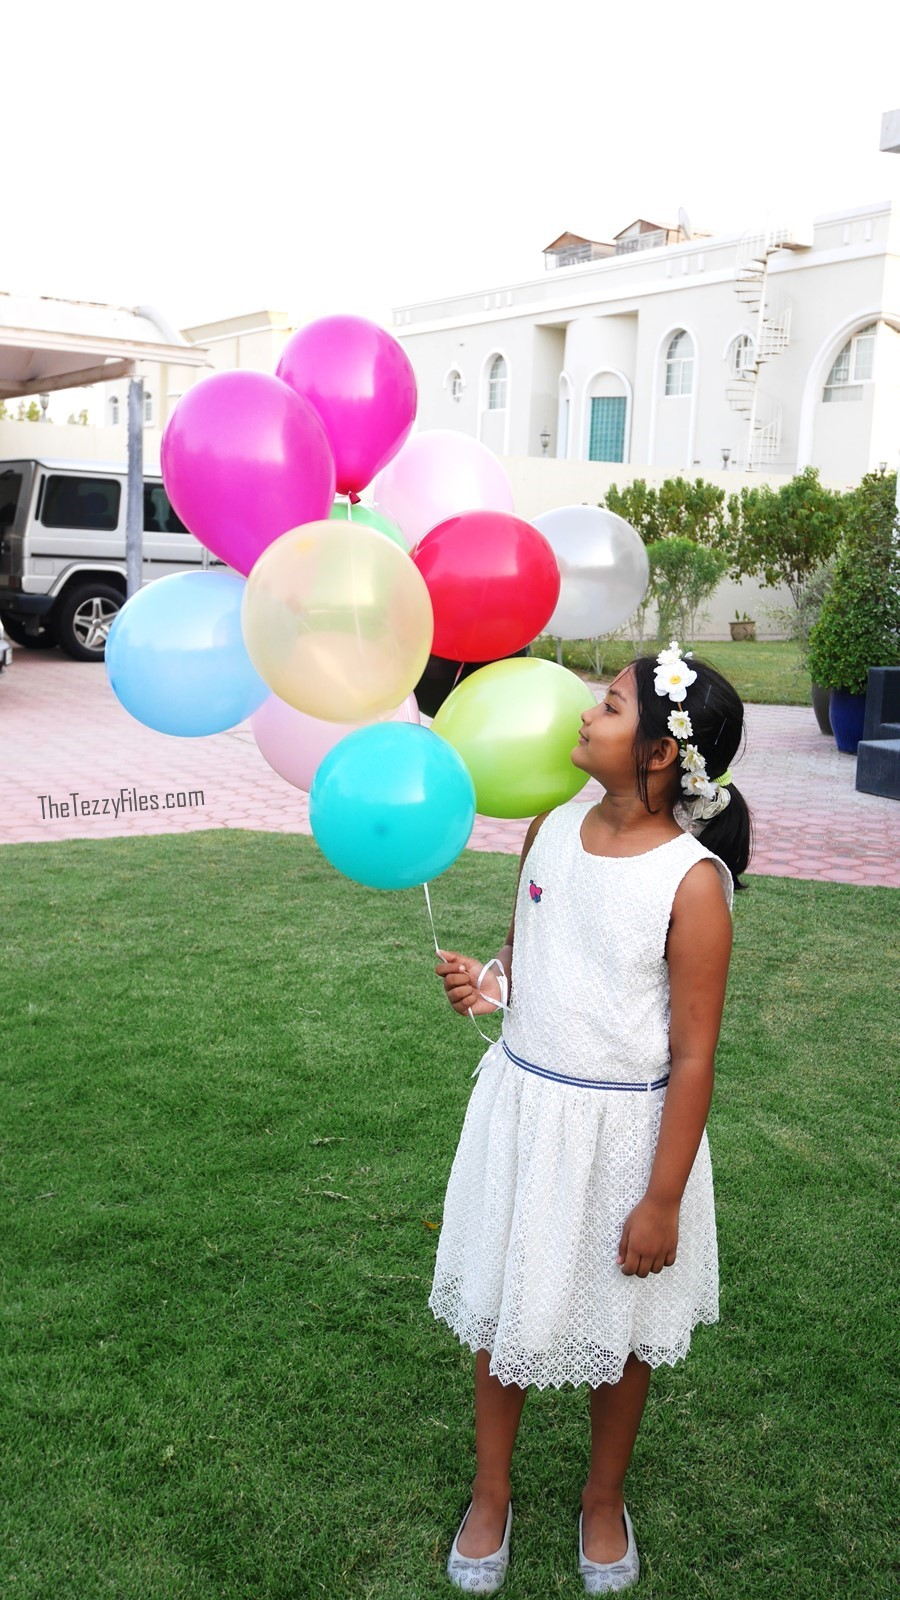 Balloonee Brothers Gas Helium Balloon Kit DIY Party Birthday Child Blogger UAE Dubai The Tezzy Files (2)